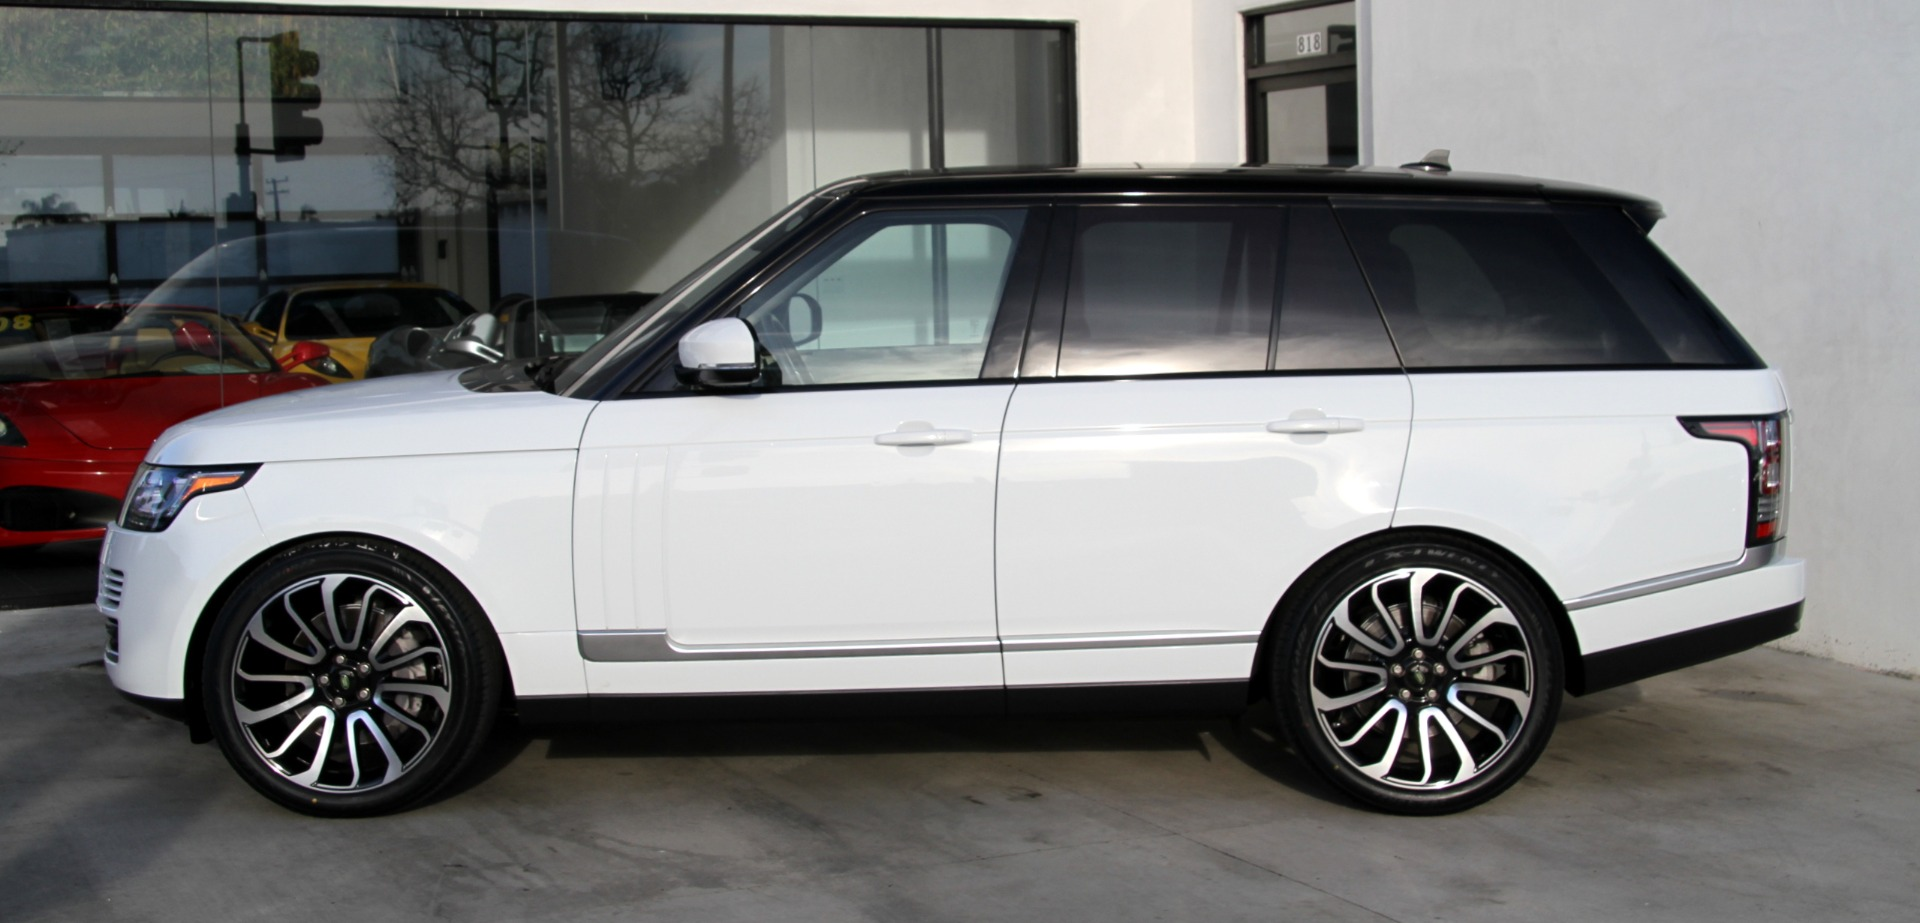 Land Rover For Sale Near Me >> 2016 Land Rover Range Rover HSE Stock # 6092 for sale near ...